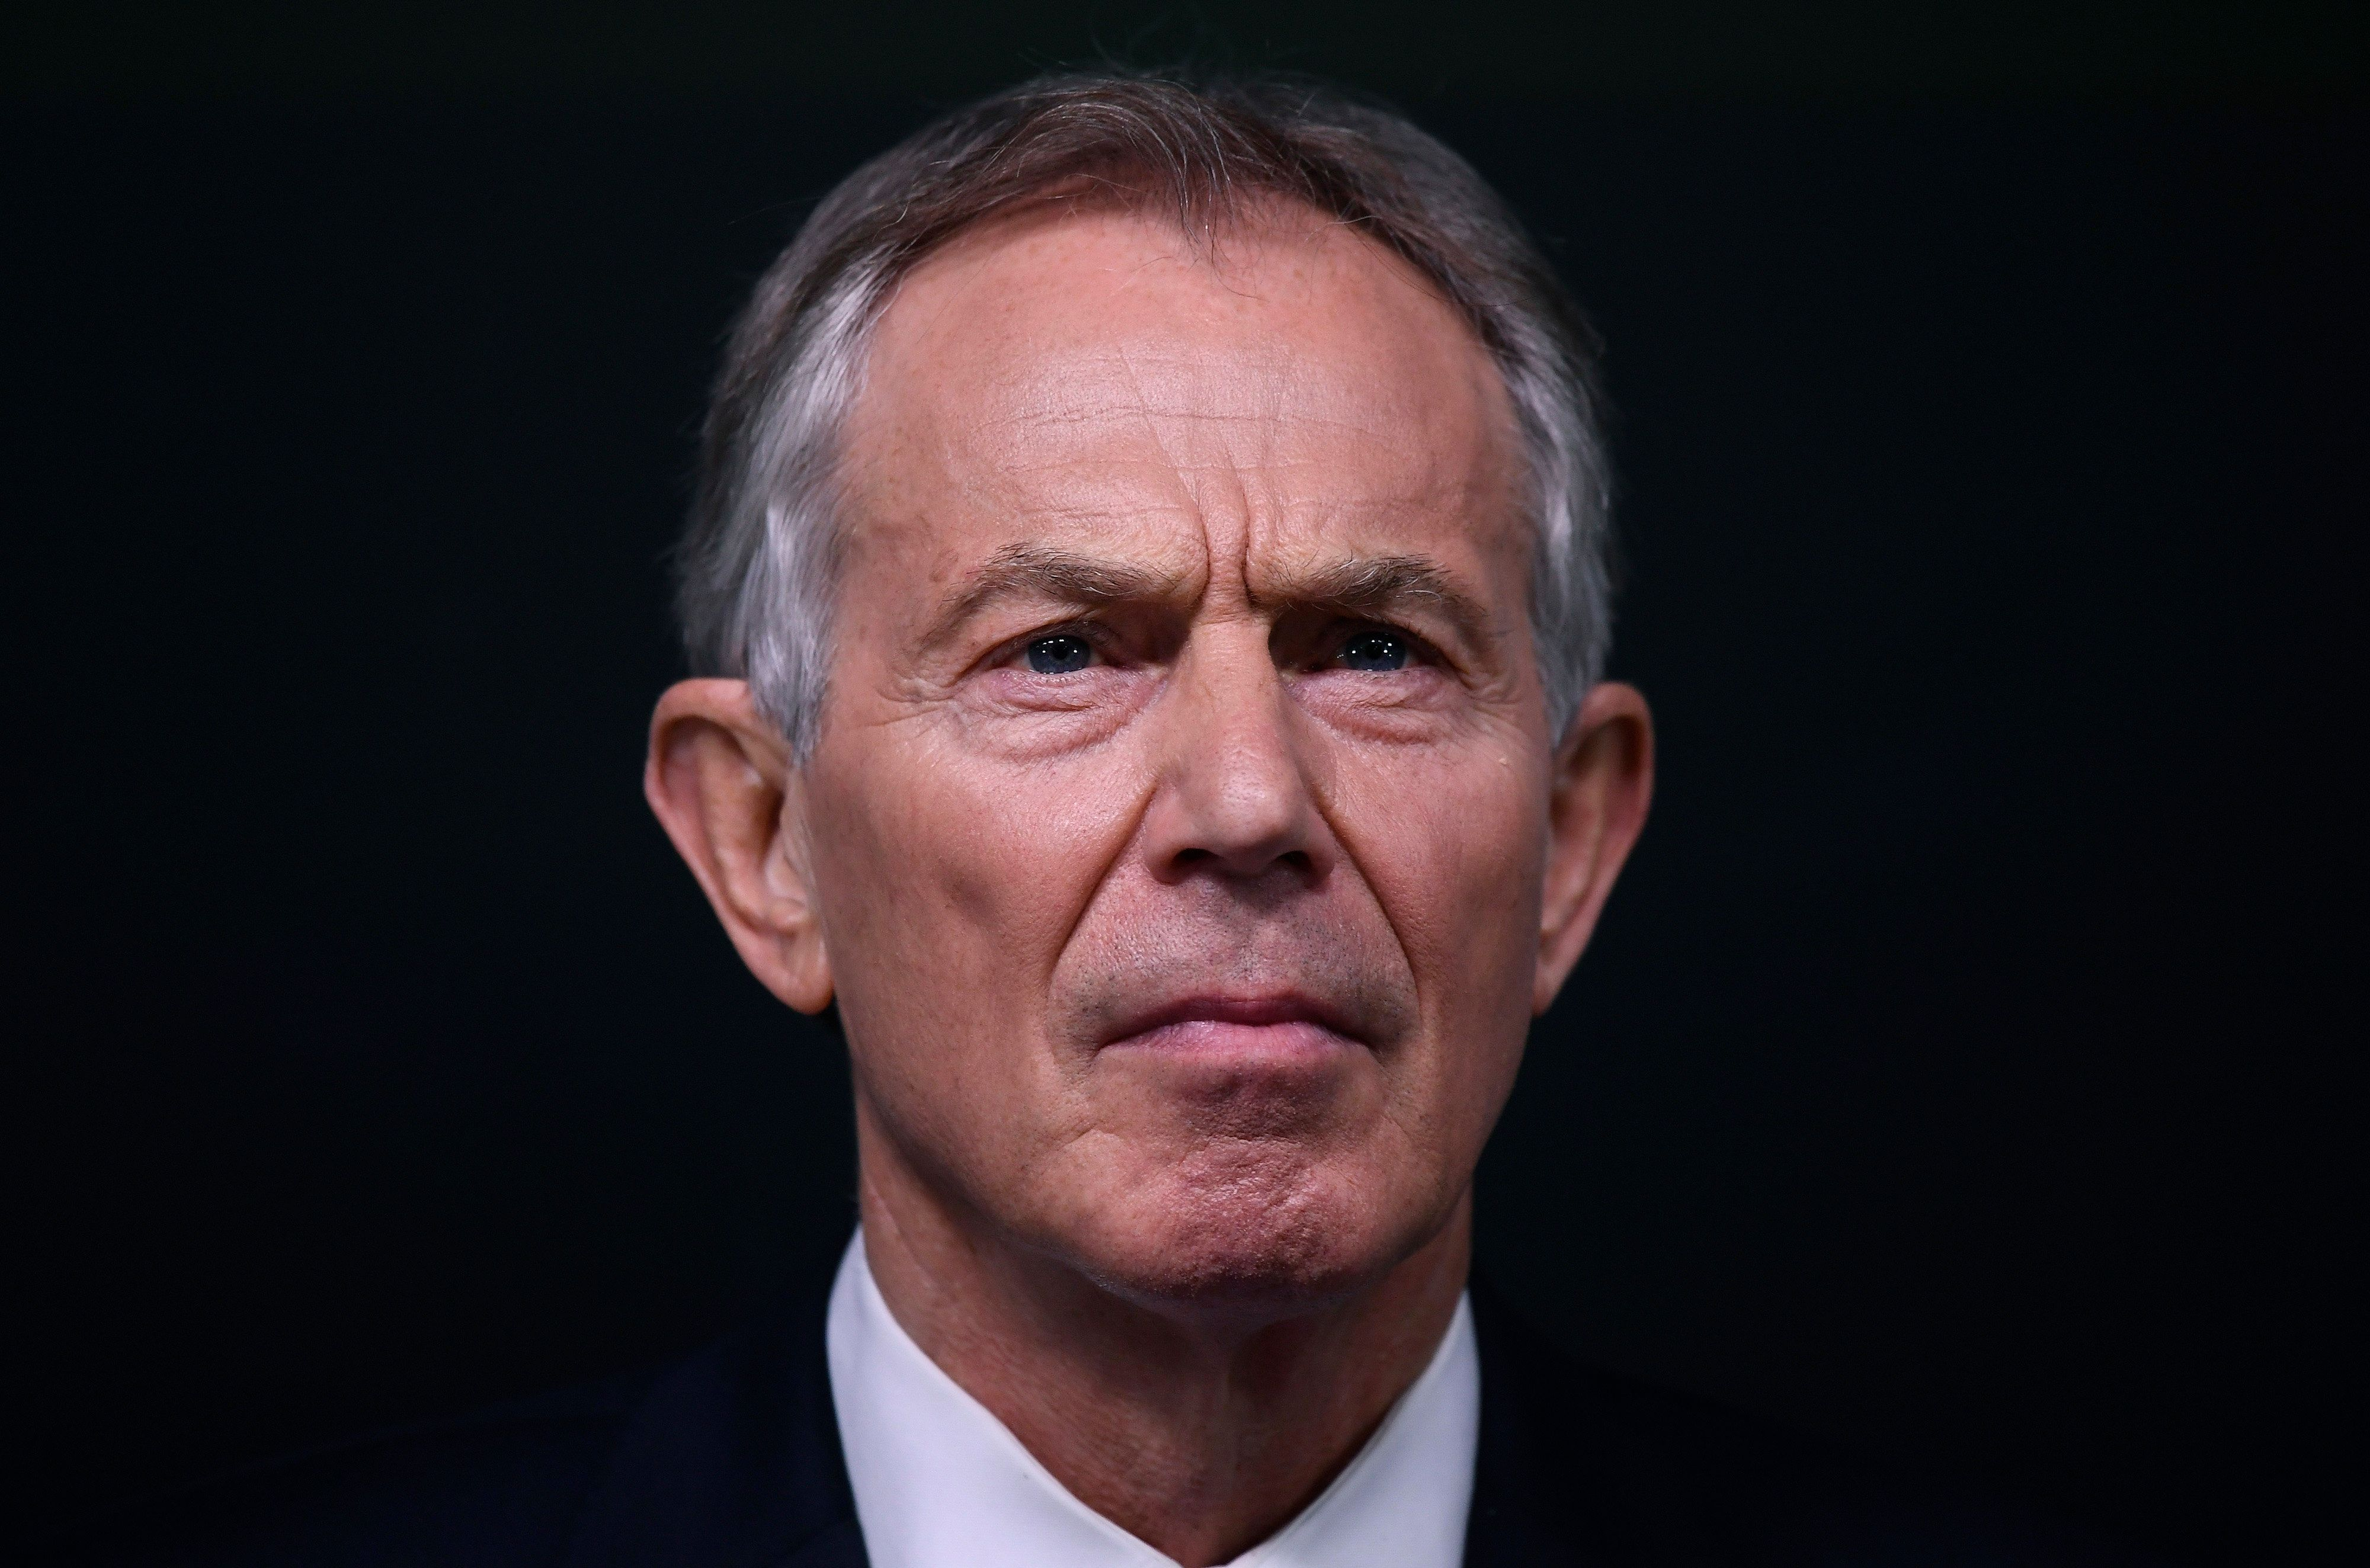 Tony Blair Acknowledges Abuse Happens In Westminster, But Says 'I Was Never Part Of